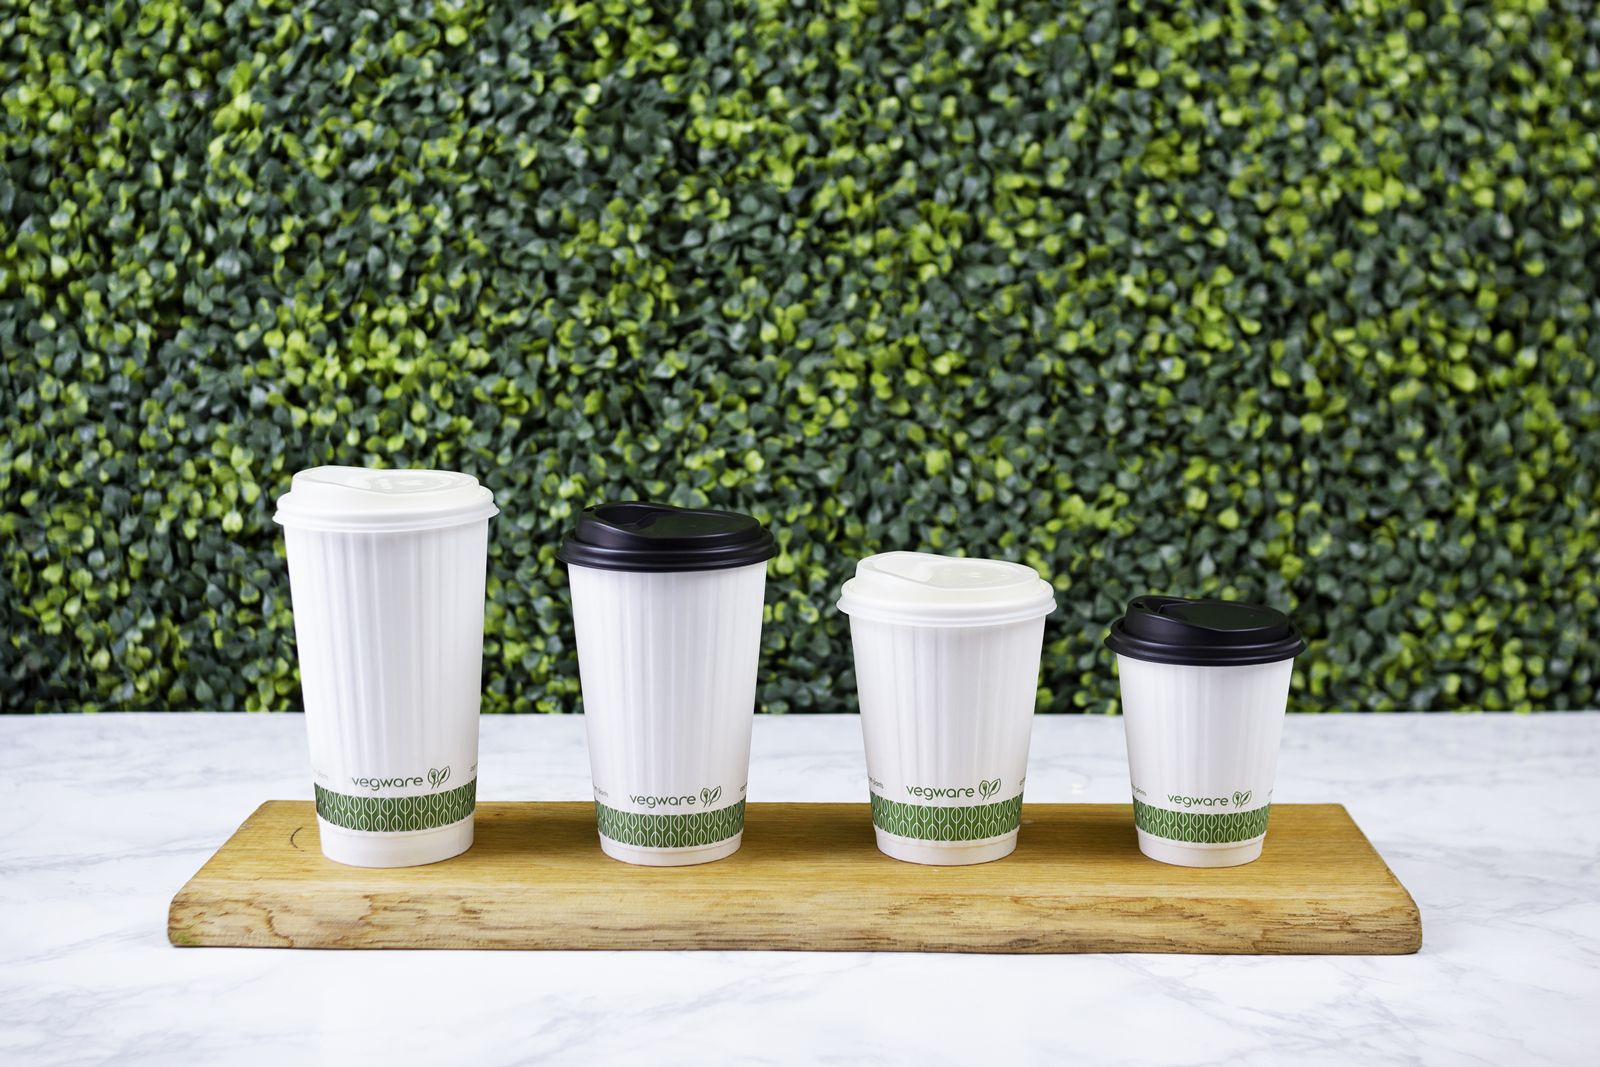 Compostable Packaging Manufacturer, Vegware Celebrates One Full Year in Huntington Beach, CA